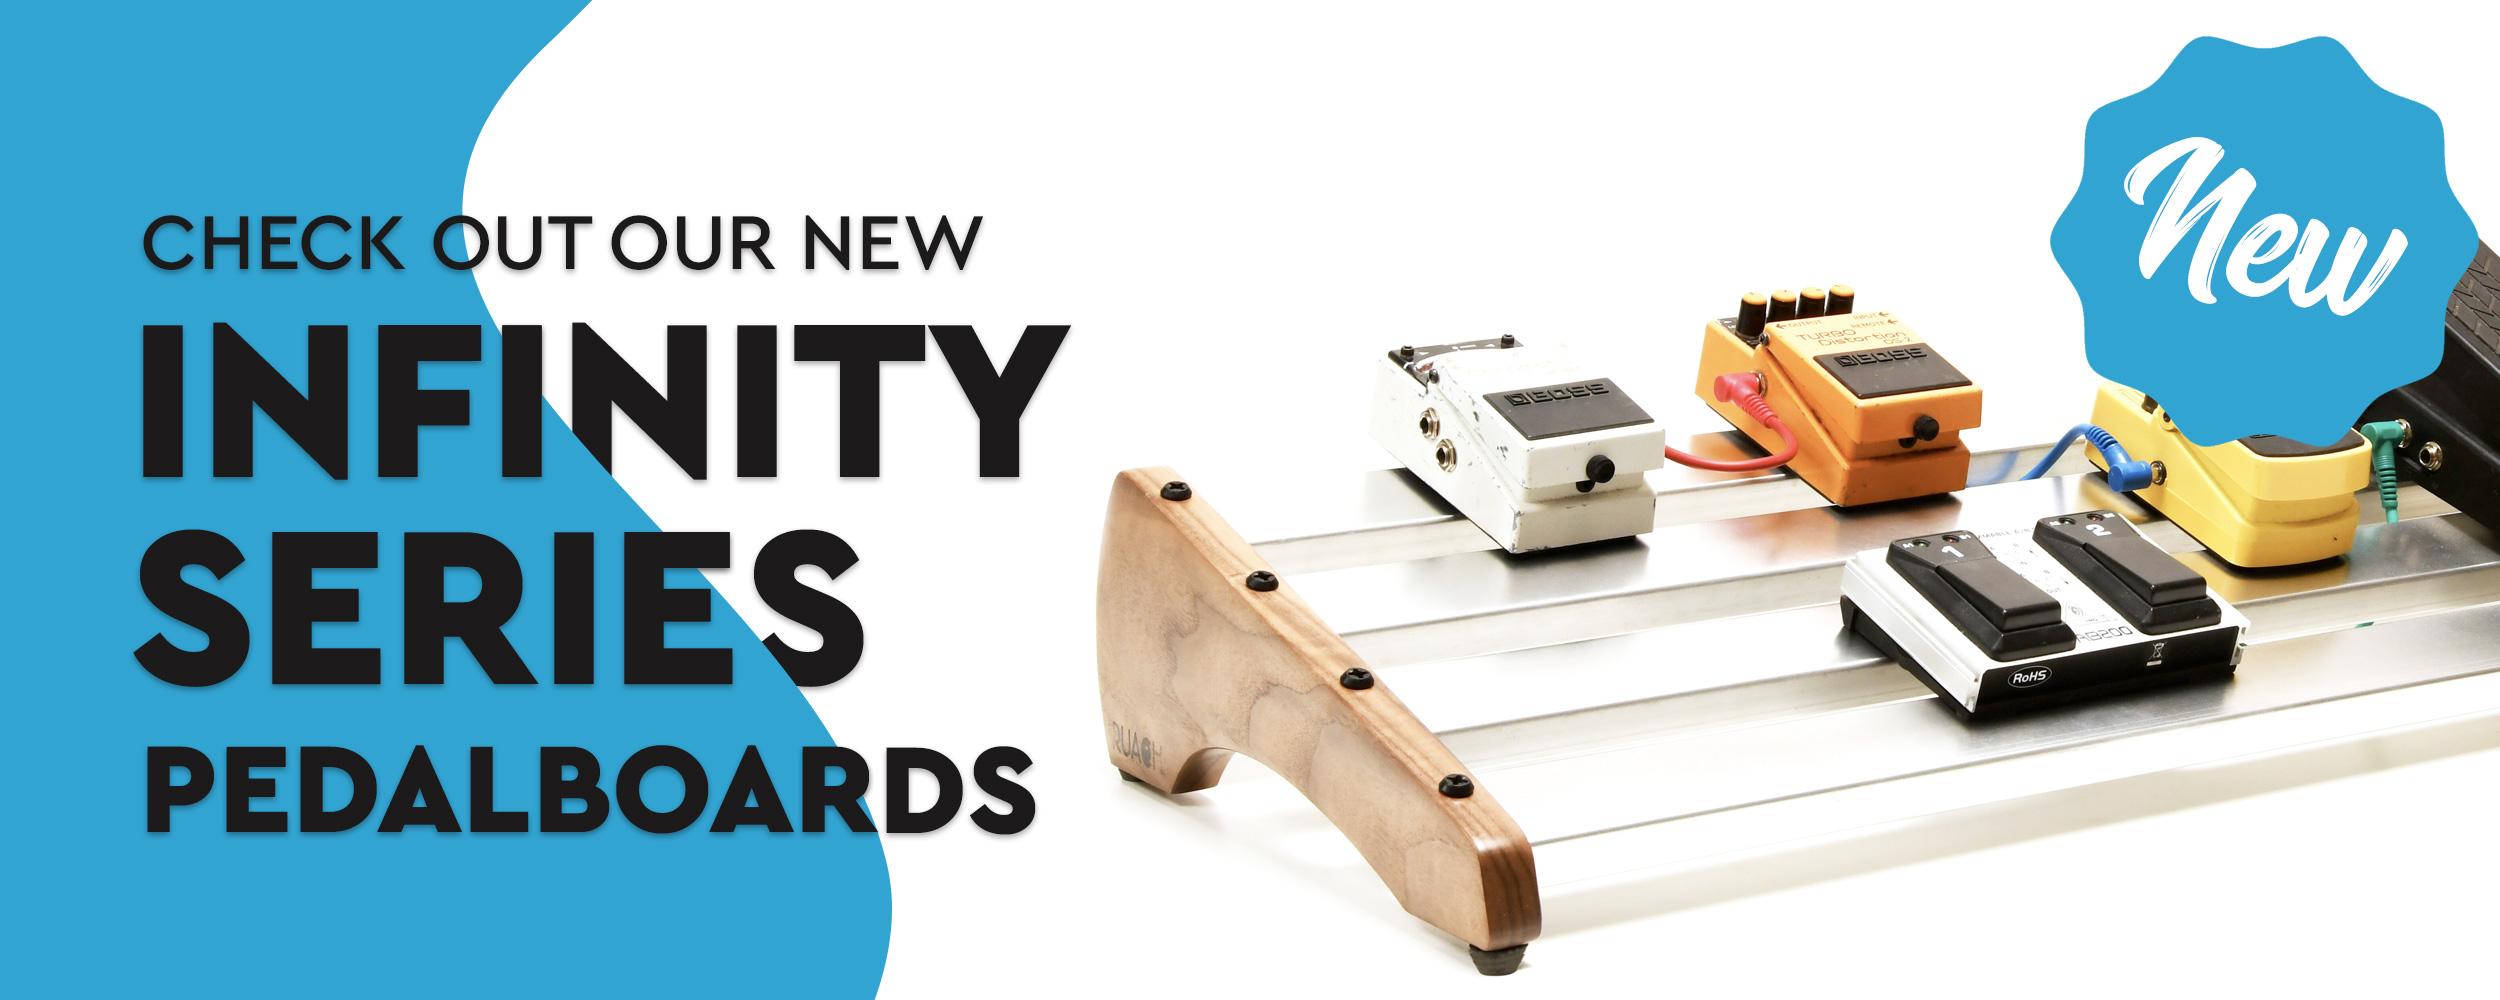 Check out our new infinity series pedalboard